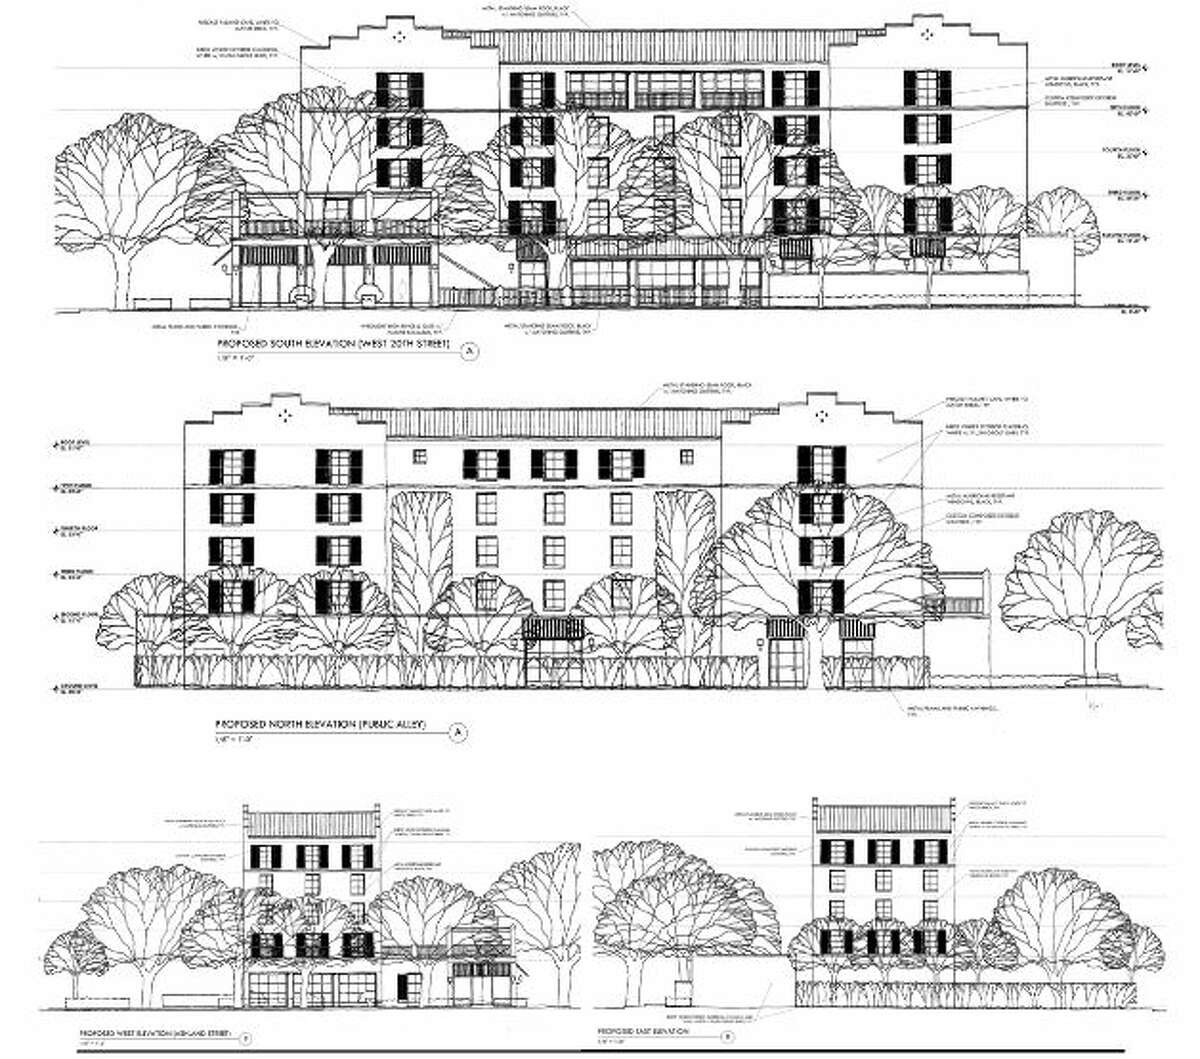 Elevations of the proposed Maison Robert hotel.